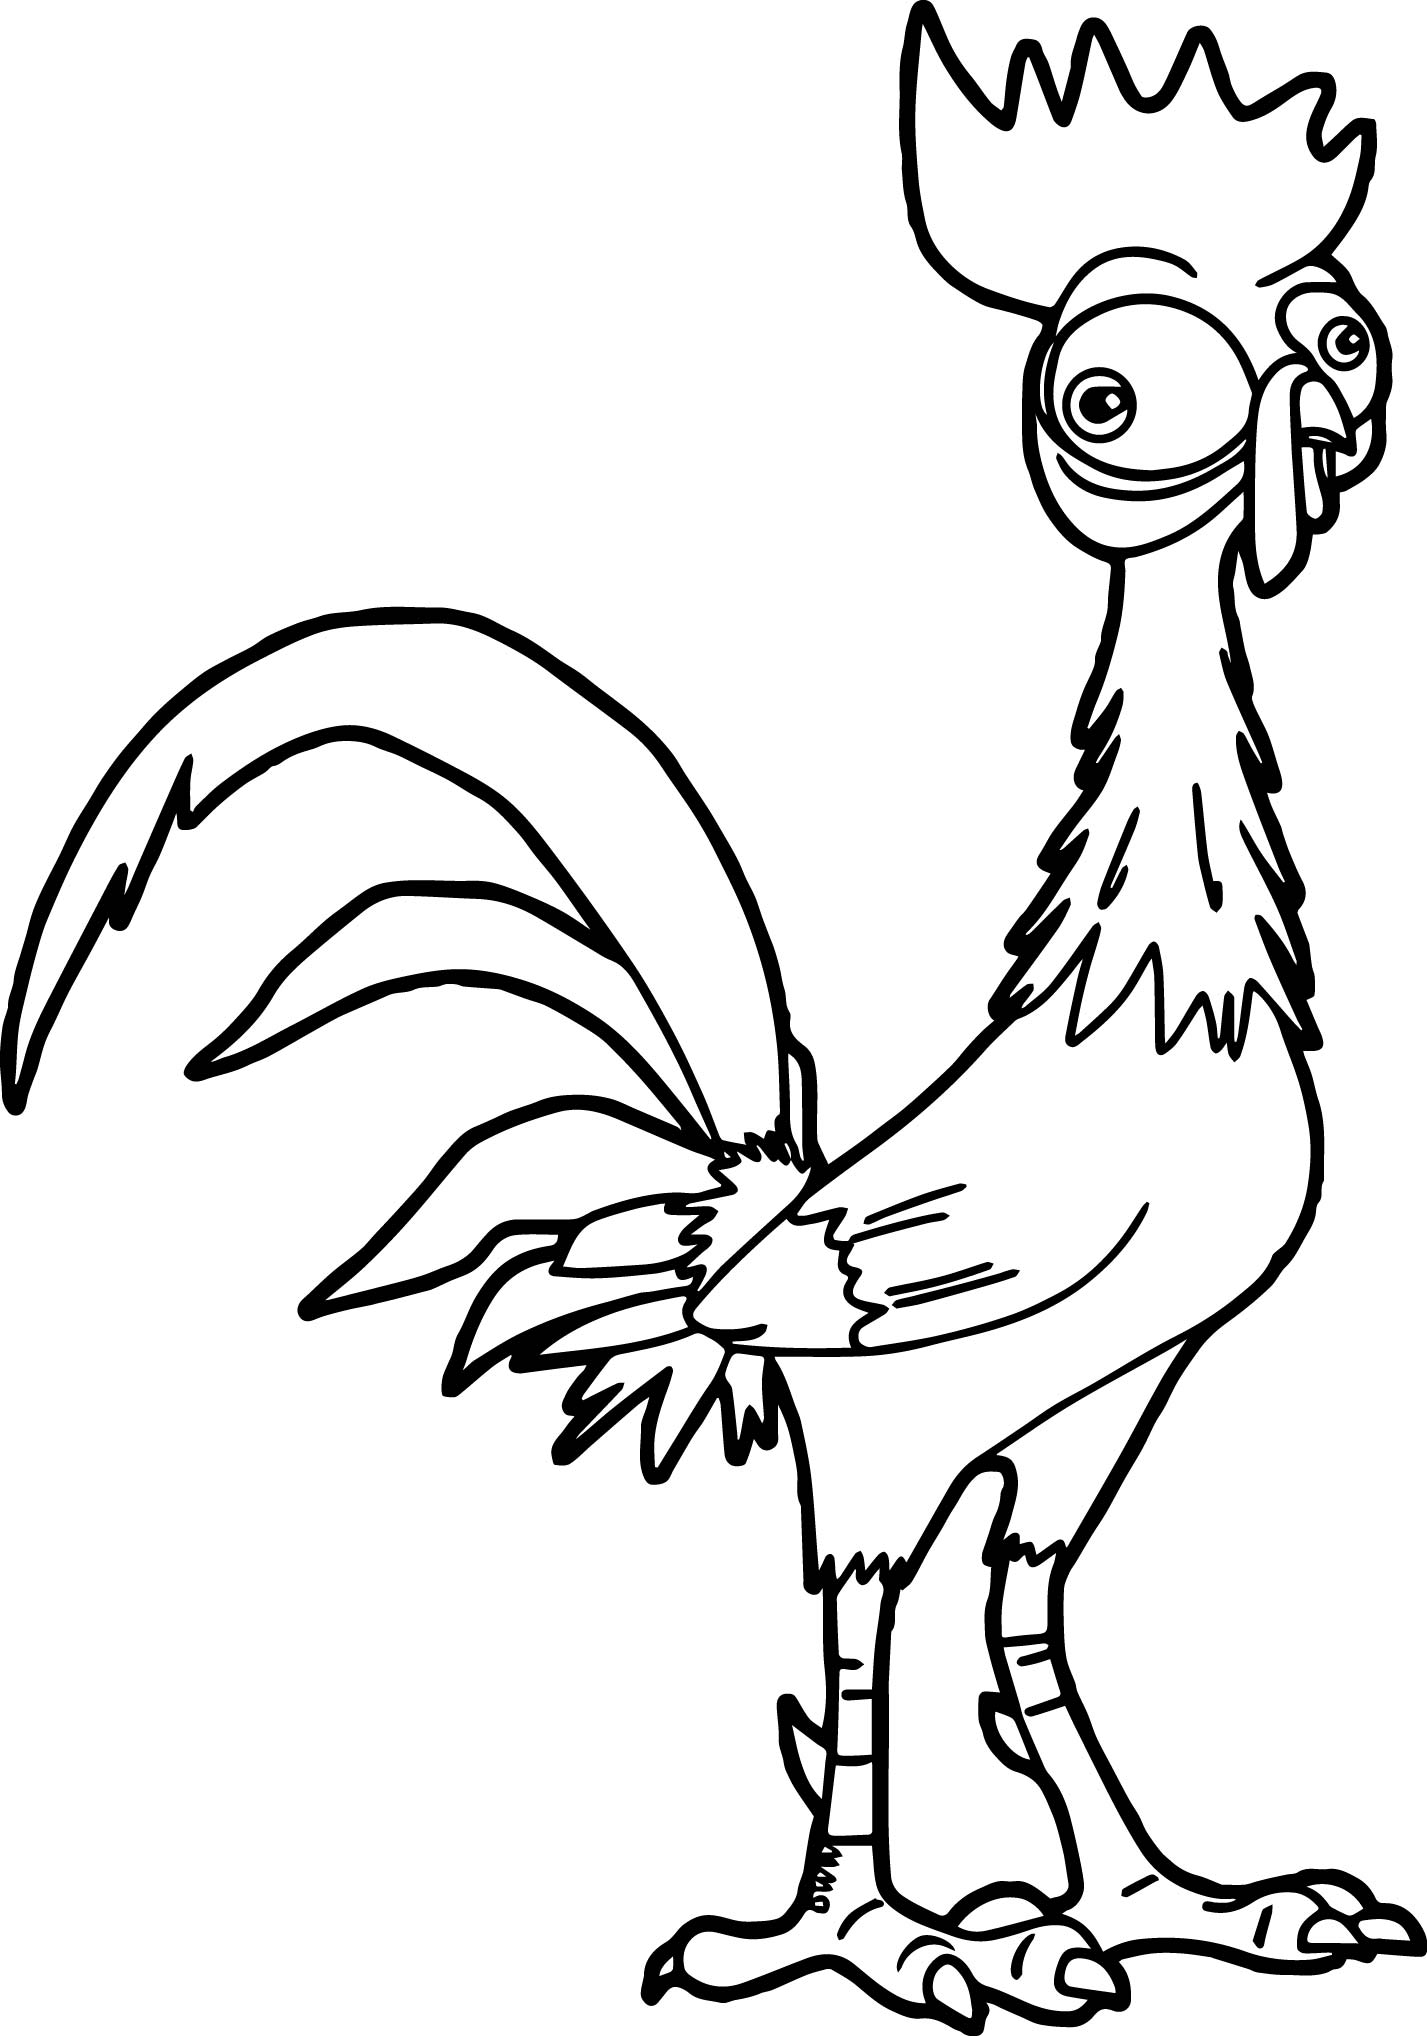 heihei the roaster coloring page wecoloringpage